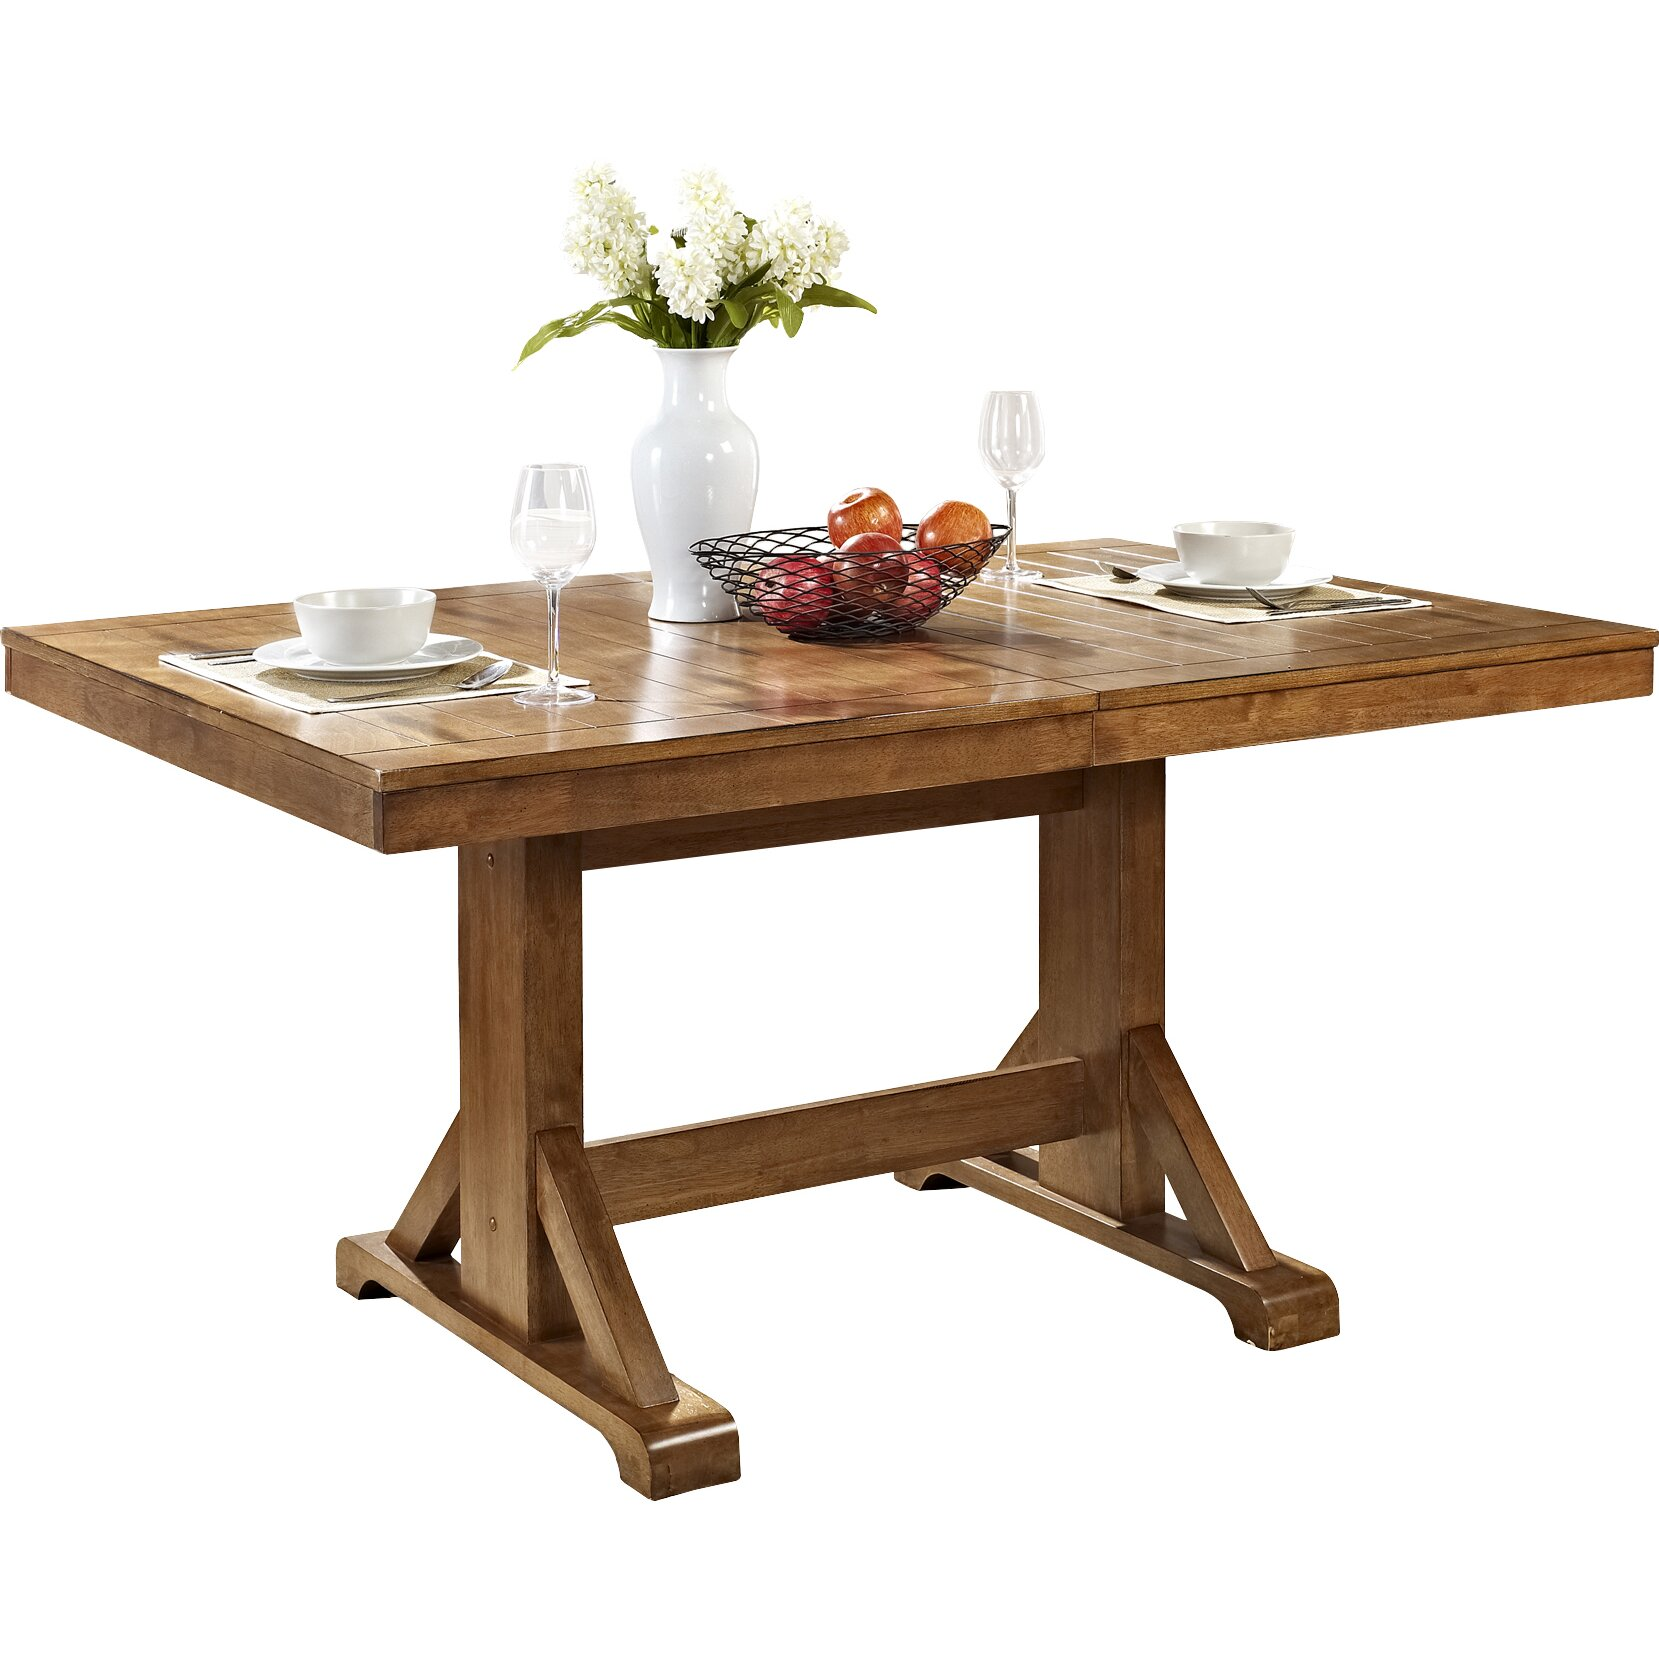 Home loft concepts extendable dining table reviews wayfair for Wayfair dining table